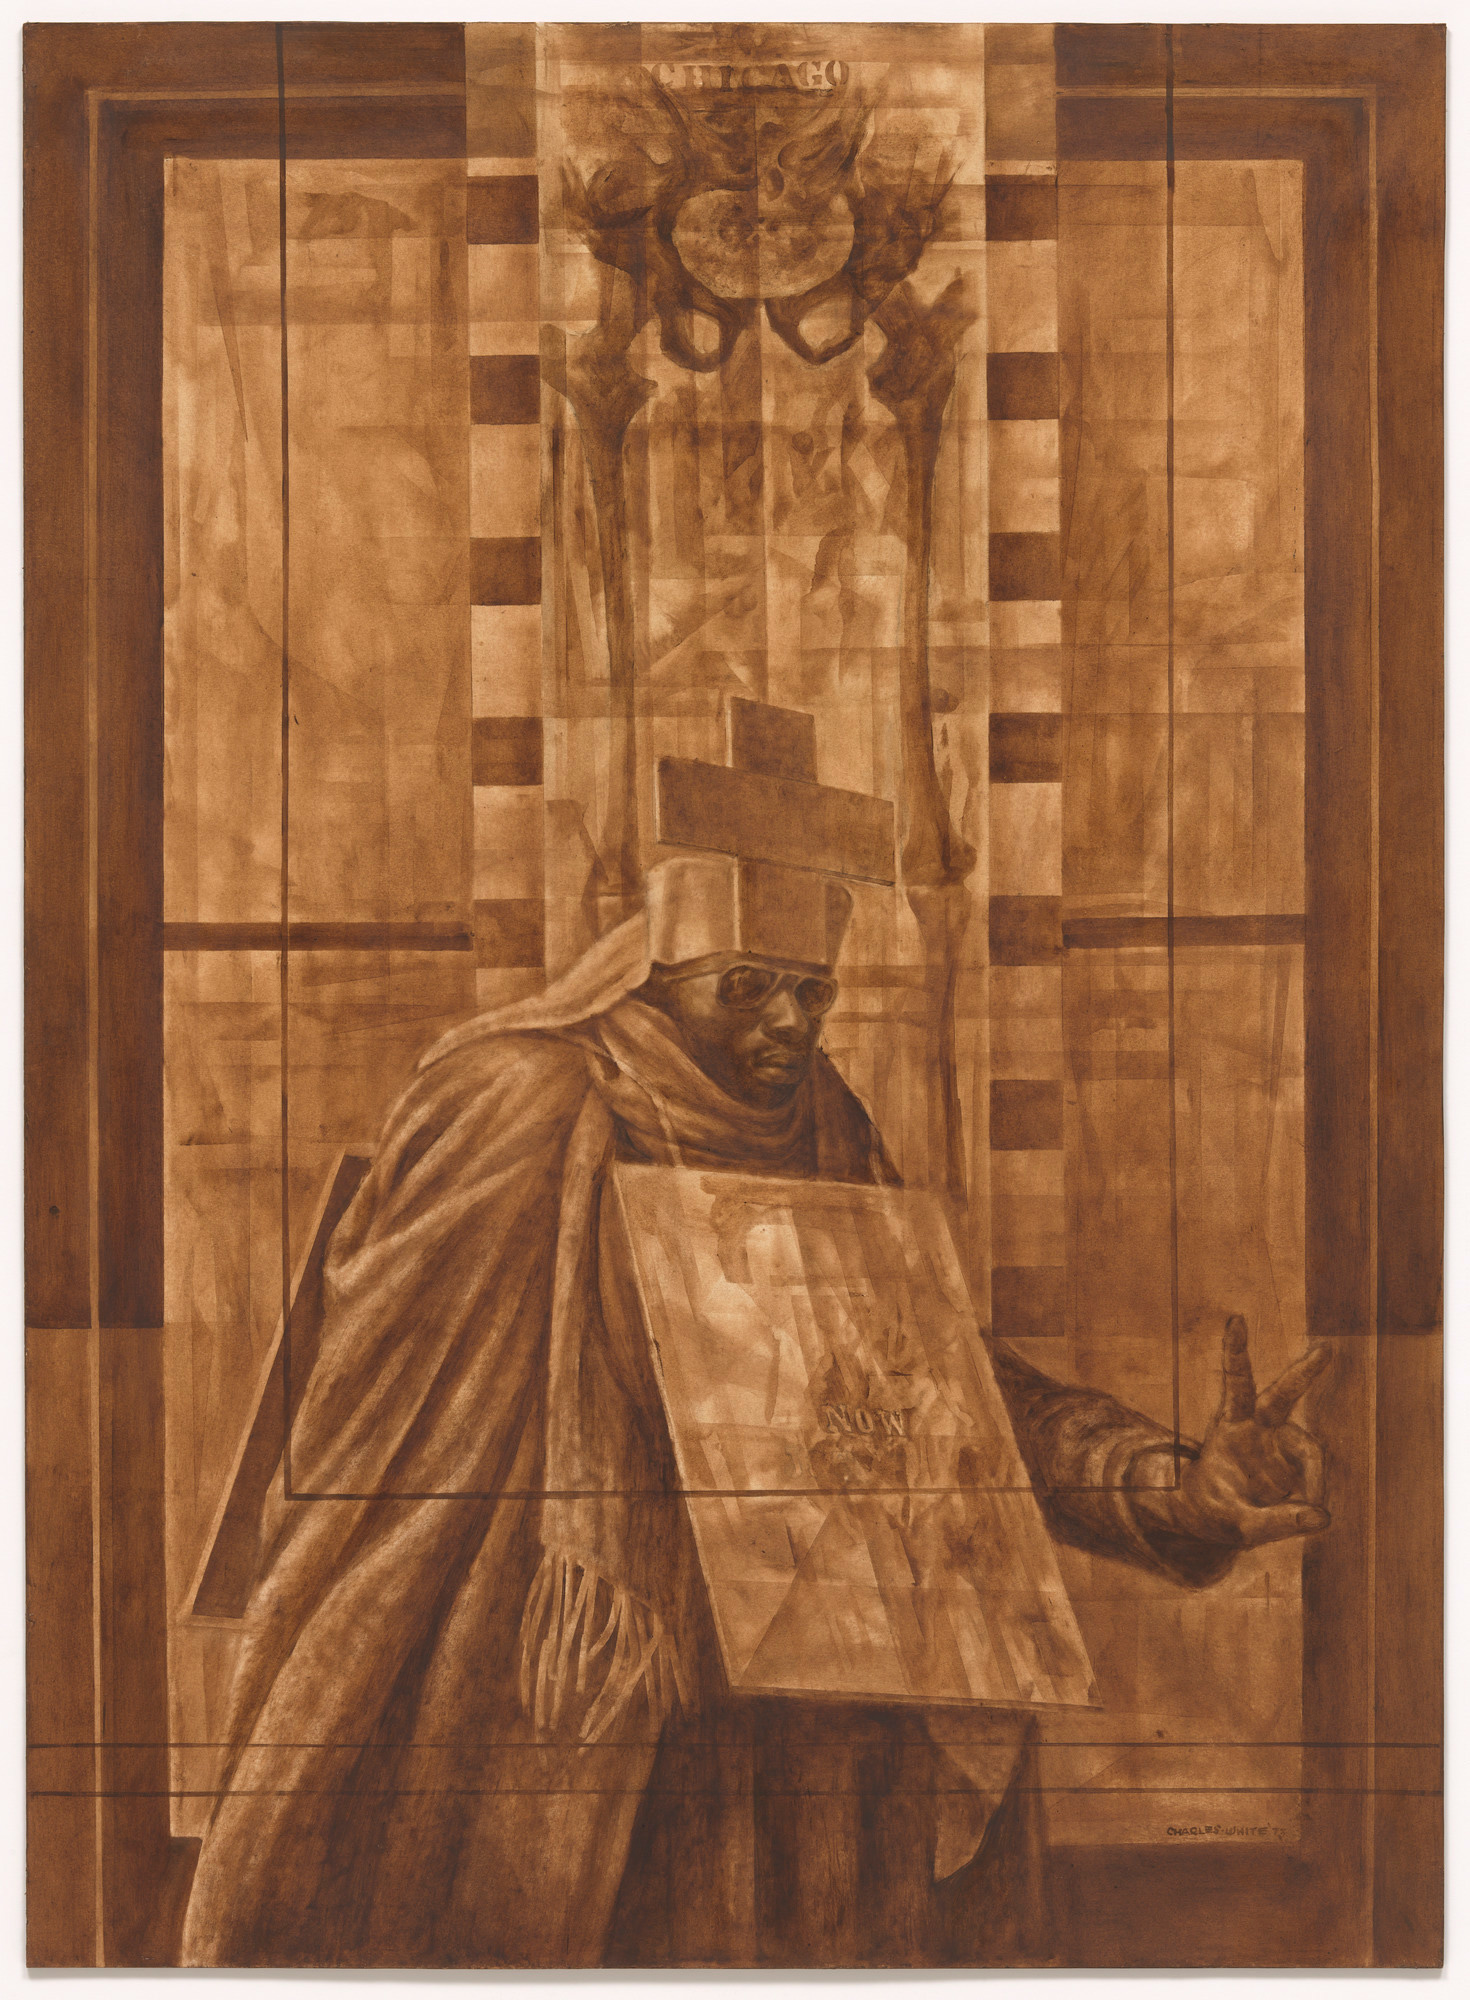 """Charles White. Black Pope (Sandwich Board Man) . 1973. Oil wash on board, 60 × 43 7/8"""" (152.4 × 111.4 cm). Richard S. Zeisler Bequest (by exchange), The Friends of Education of The Museum of Modern Art, Committee on Drawings Fund, Dian Woodner, and Agnes Gund. © 2017 The Charles White Archives"""